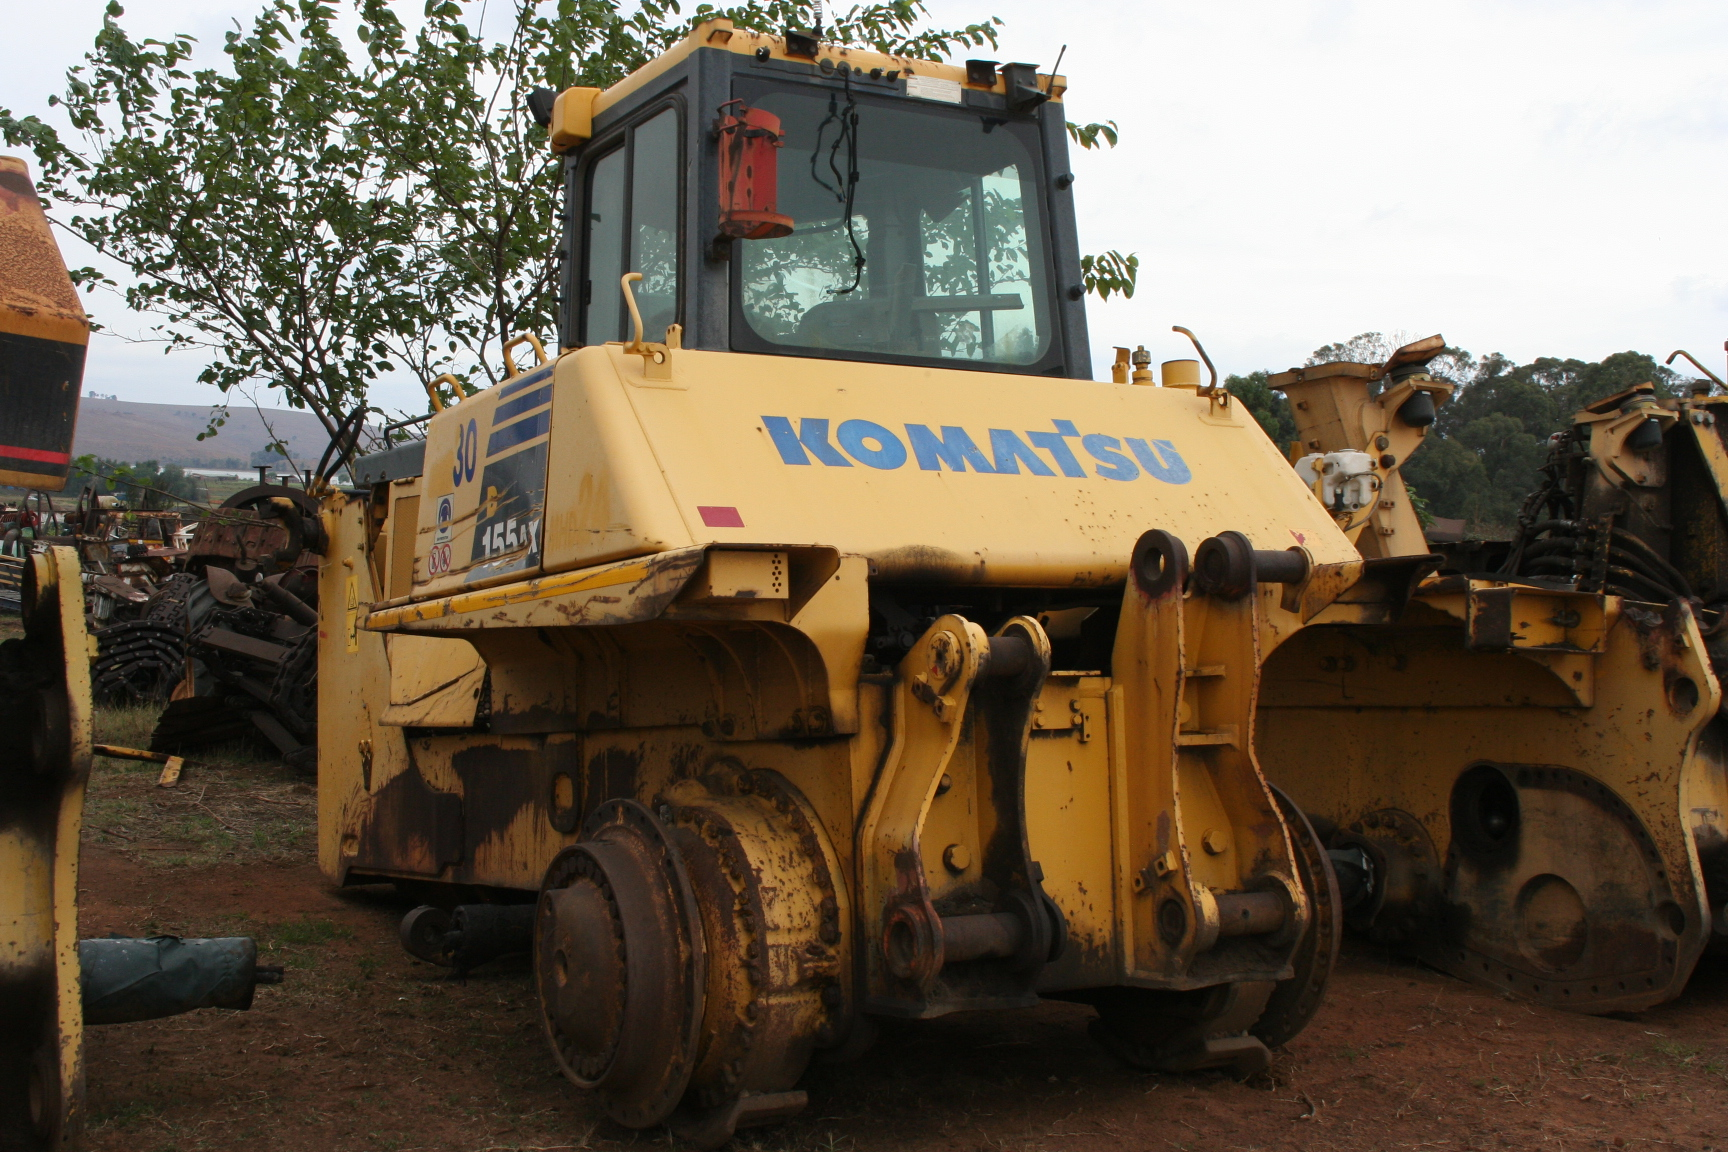 Komatsu Bulldozers (Stripping For Spares)